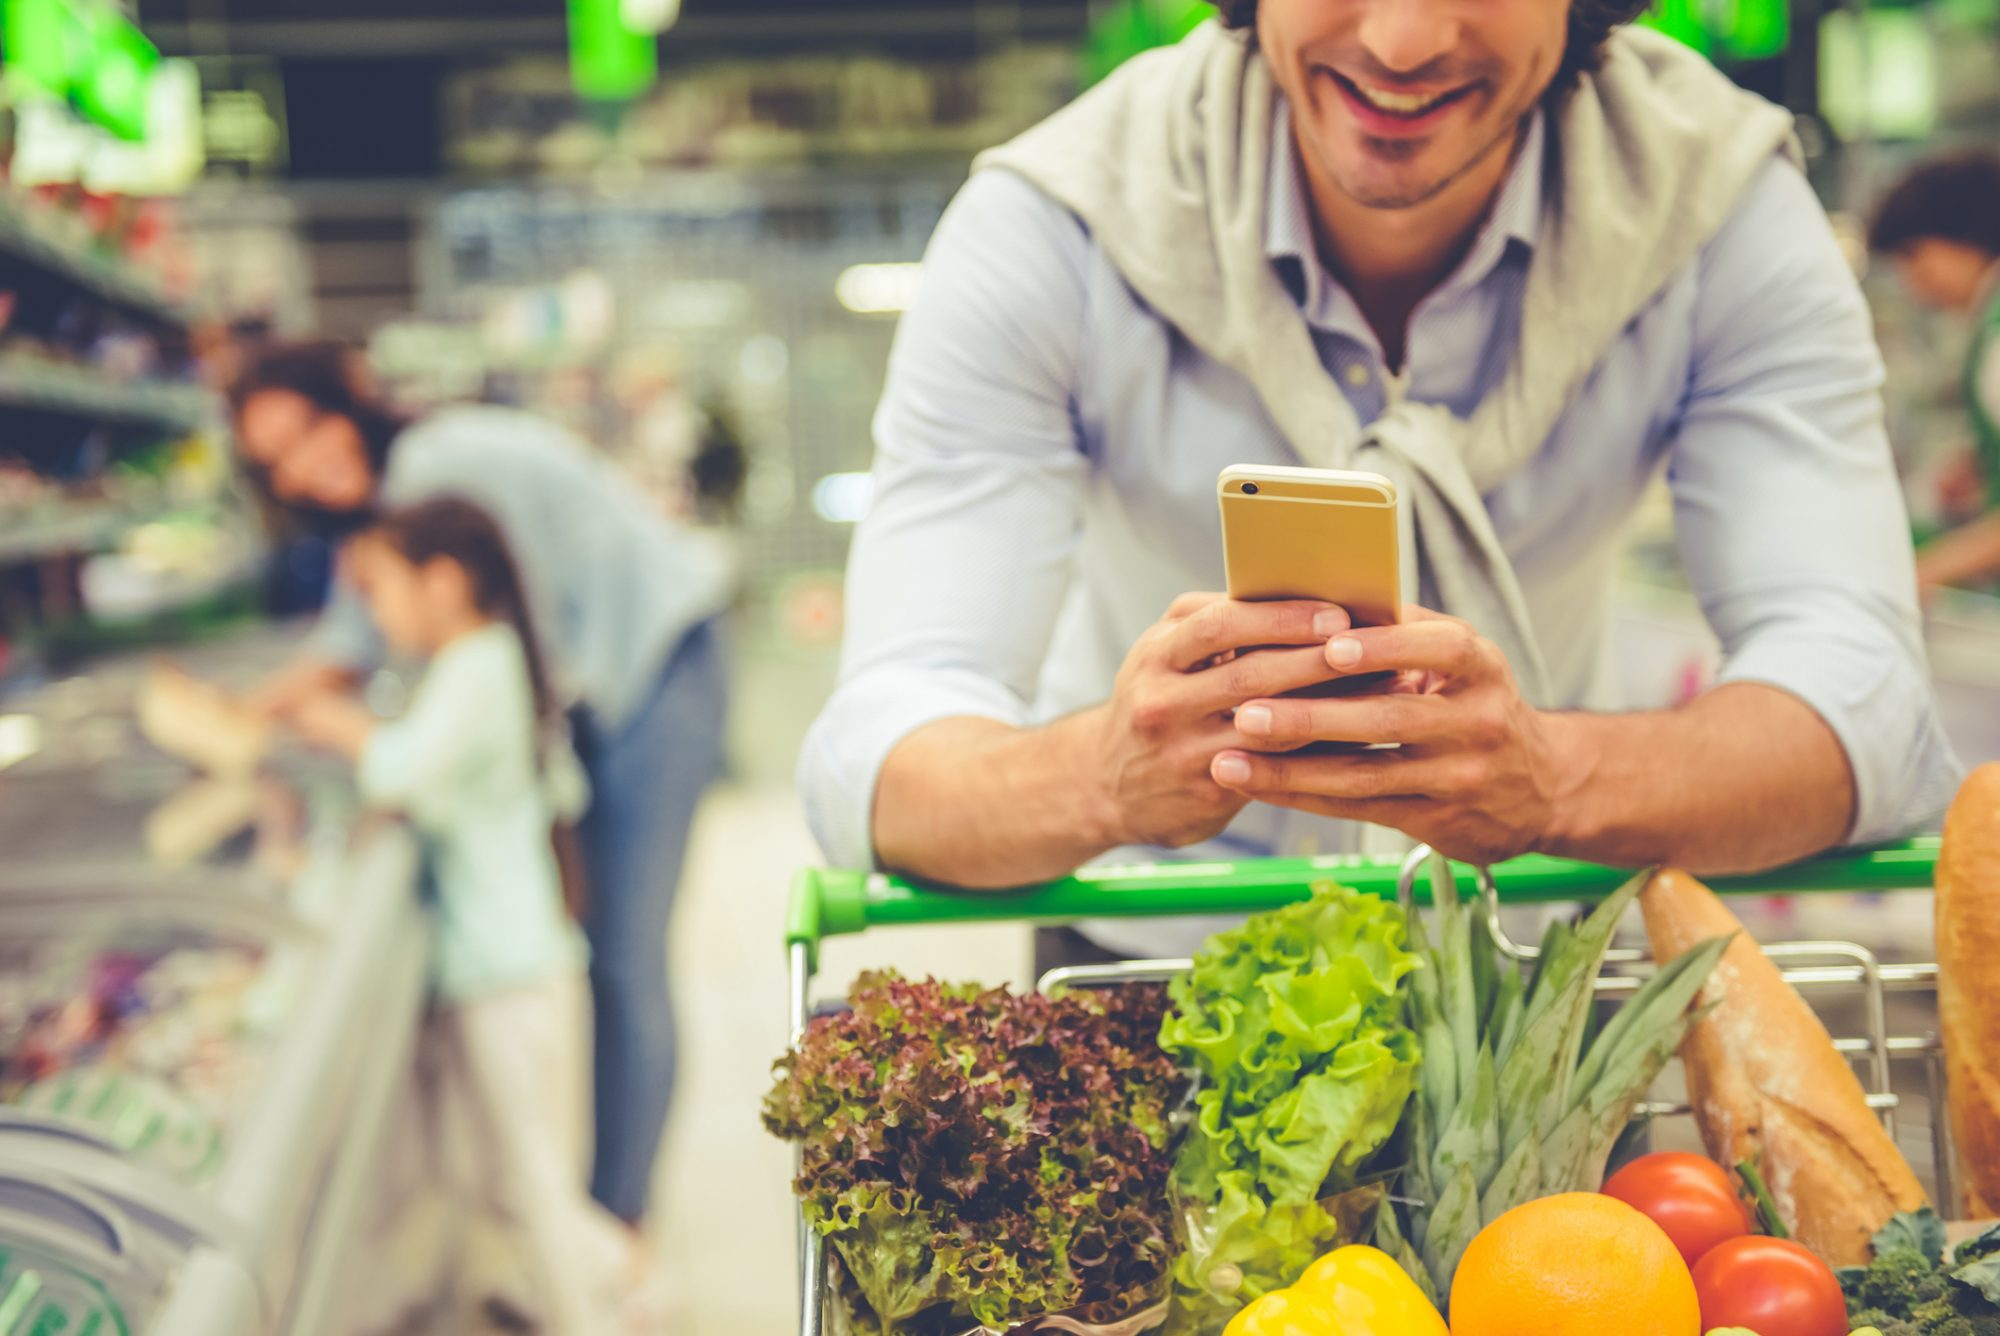 <p>Family in the supermarket. Cropped image of dad leaning on shopping cart, using a mobile phone and smiling, in the background his wife and daughter are choosing food</p>